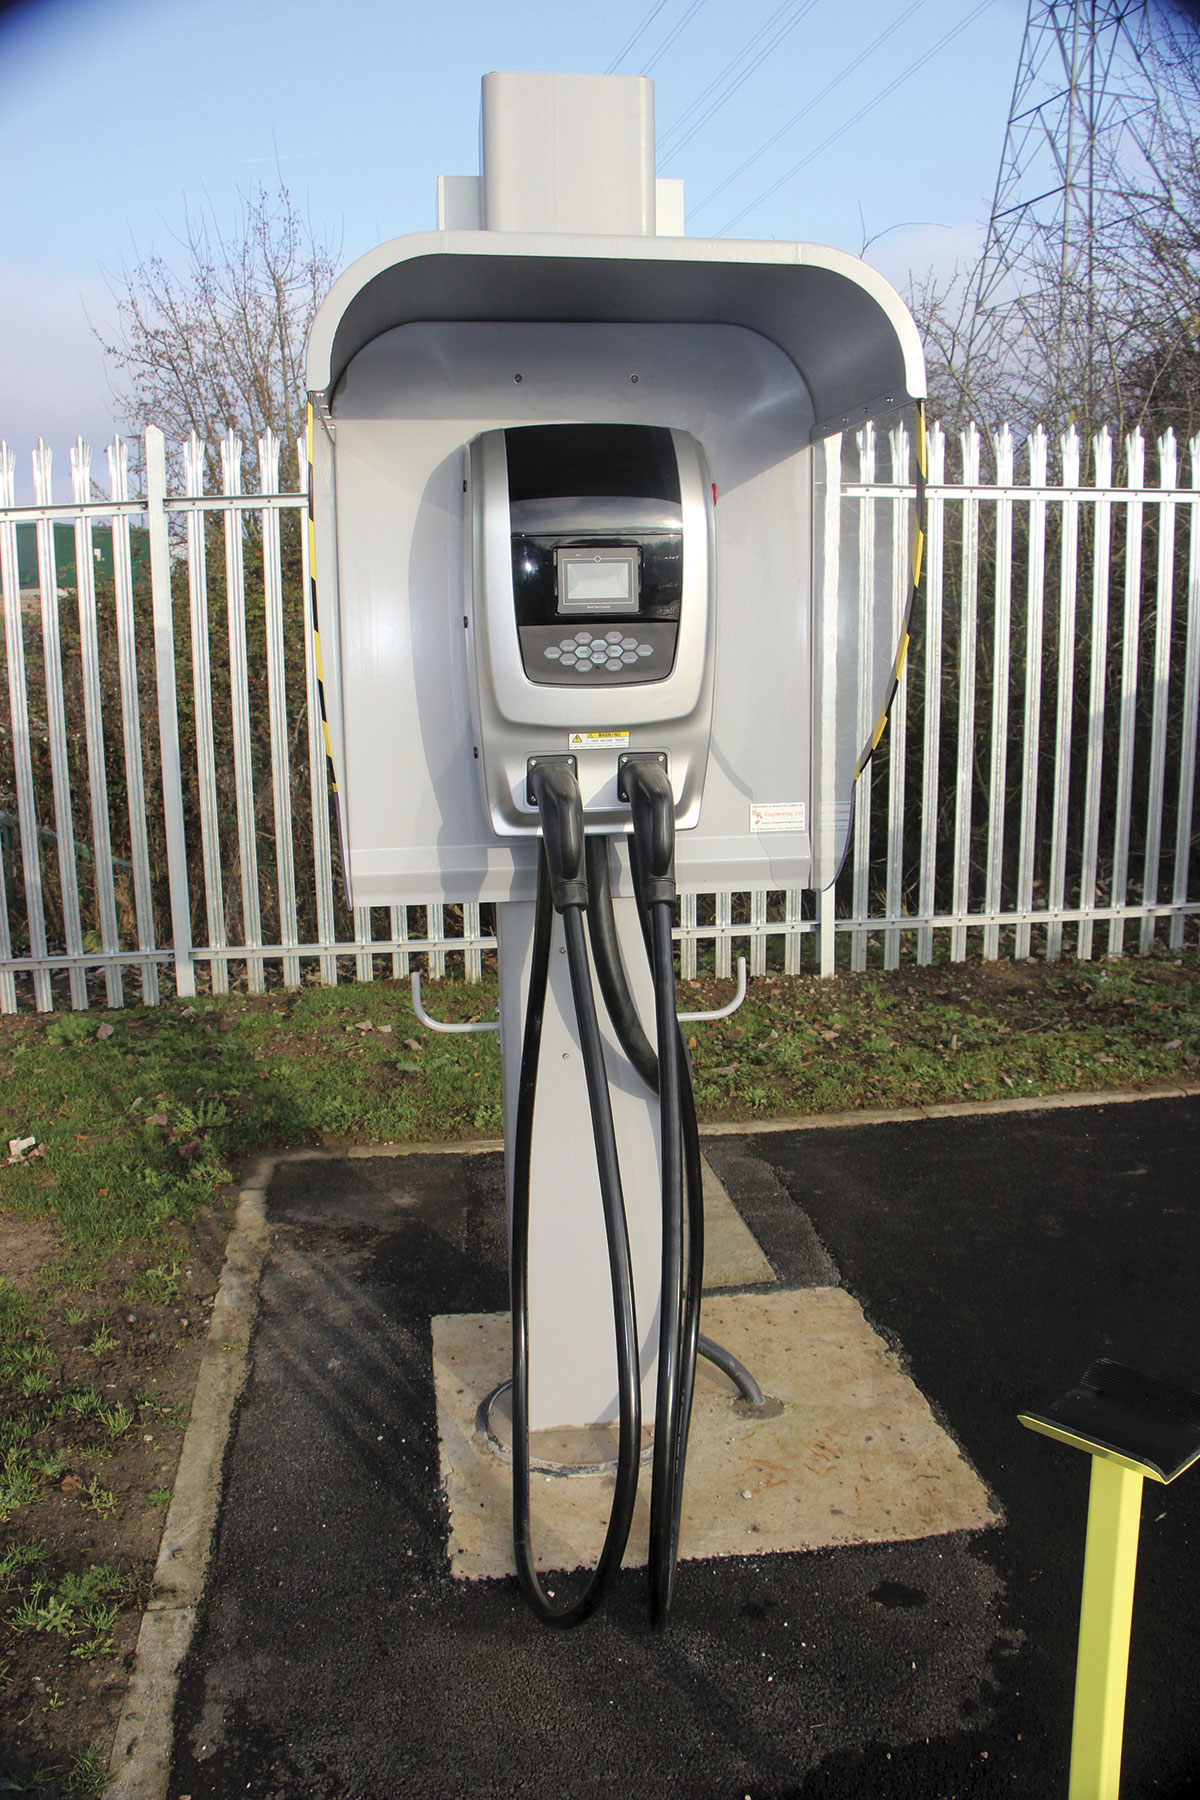 One of the DC charging points. A full charge using just one of the 40kw leads takes four and a half hours. For a fast charge two leads can be utilised at the same time